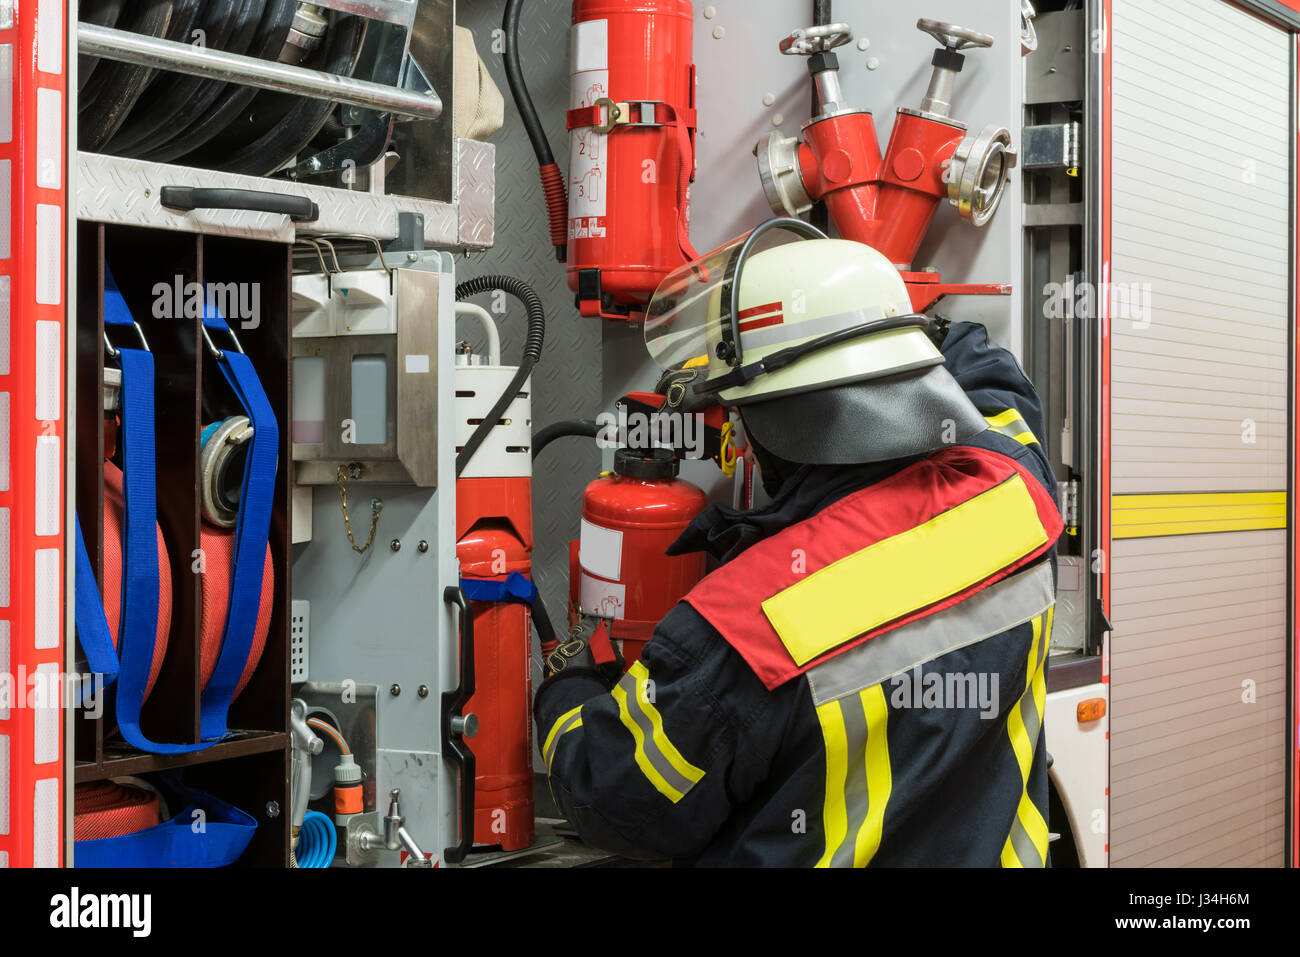 German firefighter with fire extinguisher on the fire truck - Stock Image